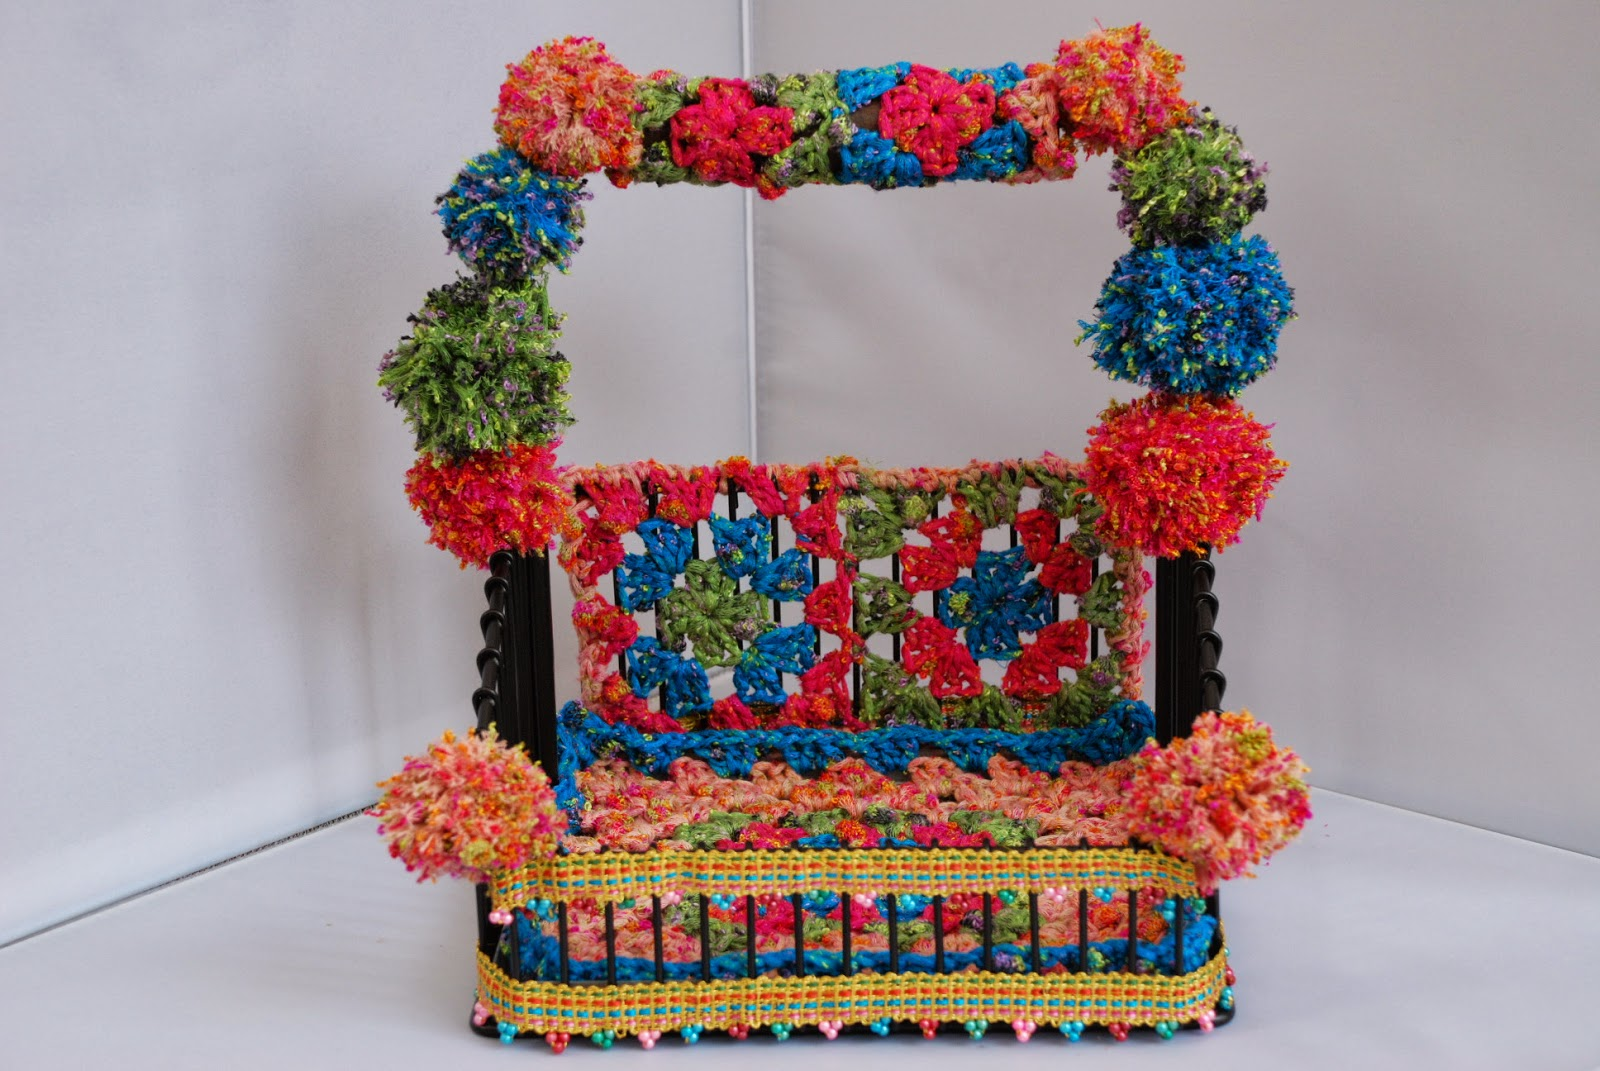 image of yarn bombed basket